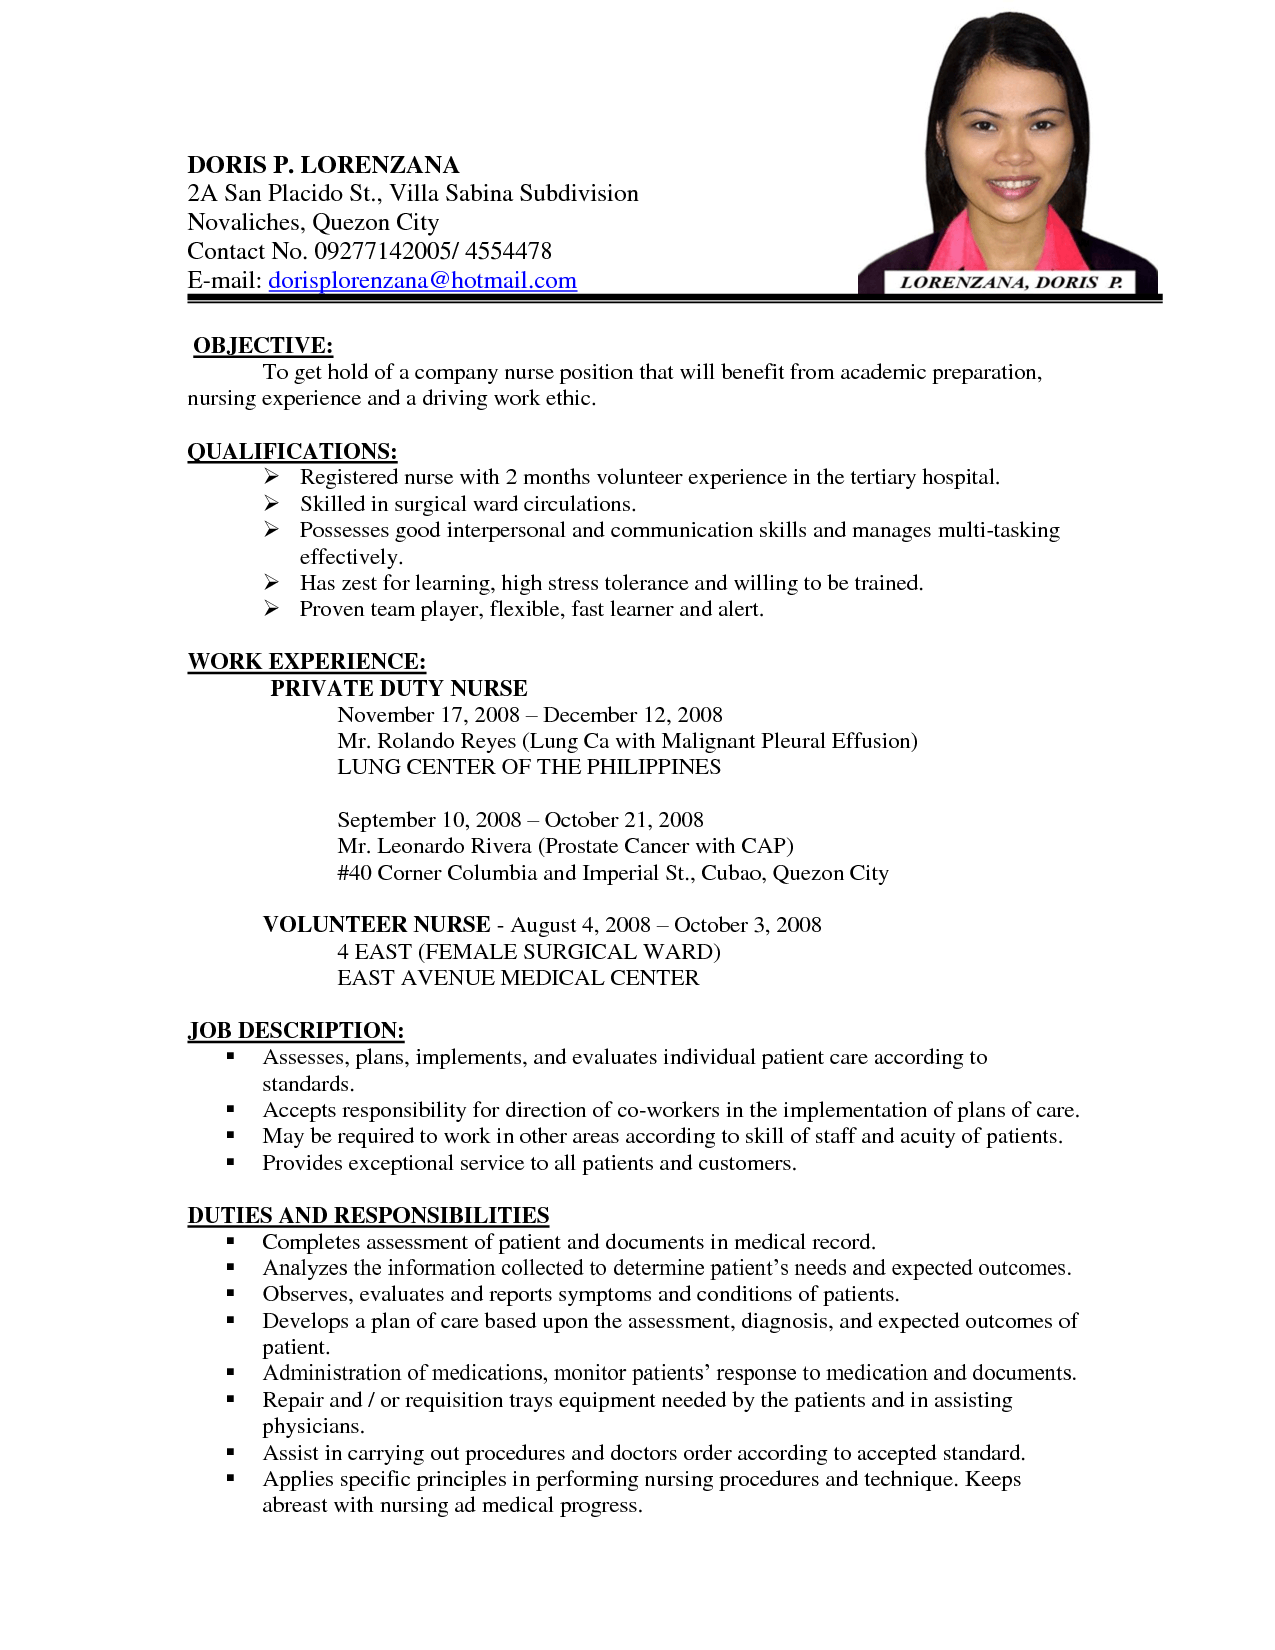 Image result for curriculum vitae format for a nurse card image result for curriculum vitae format for a nurse yelopaper Images